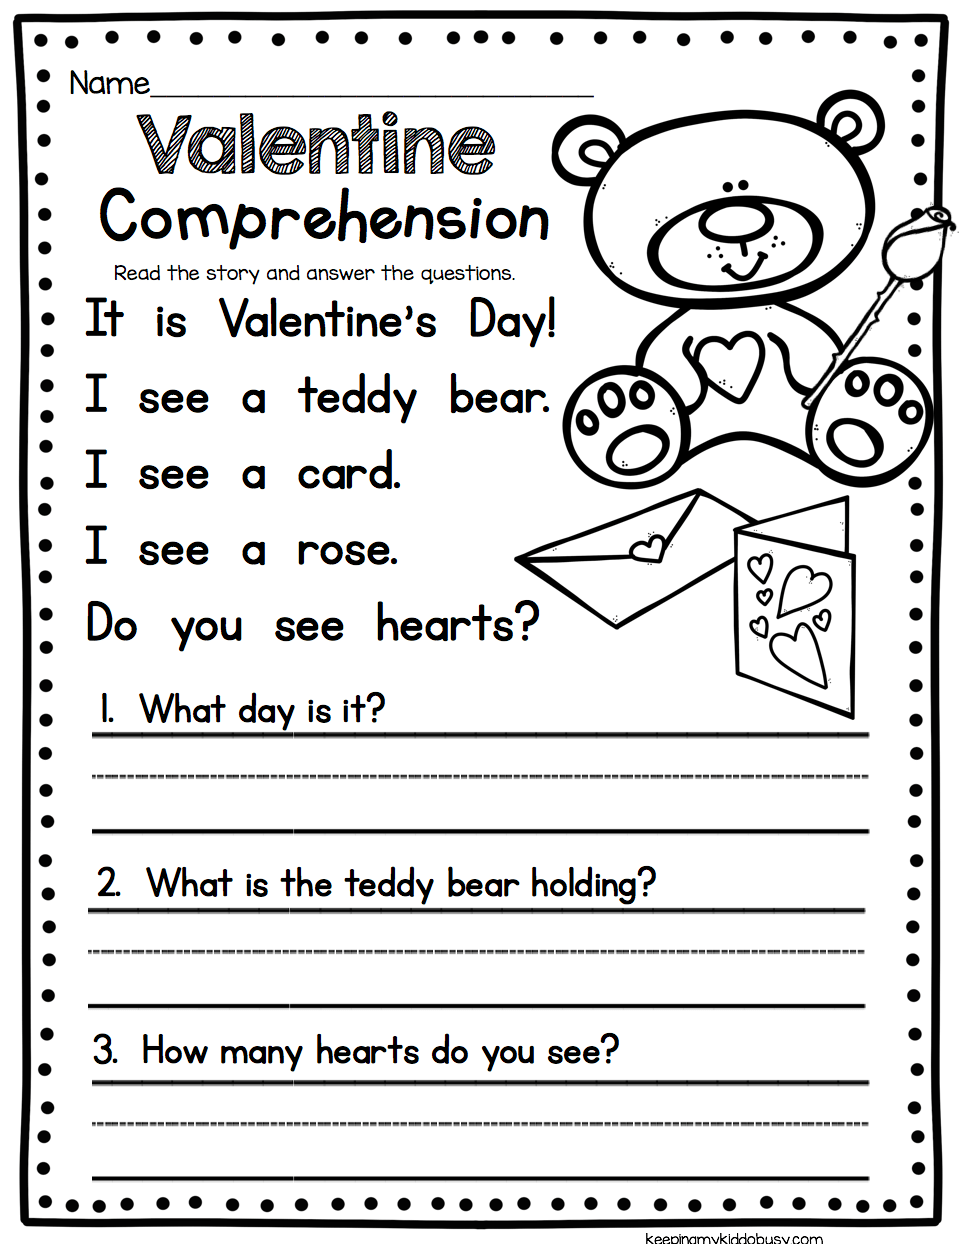 Worksheets Easy Reading Worksheets february math ela pack freebies comprehension worksheets valentines day worksheet easy reading